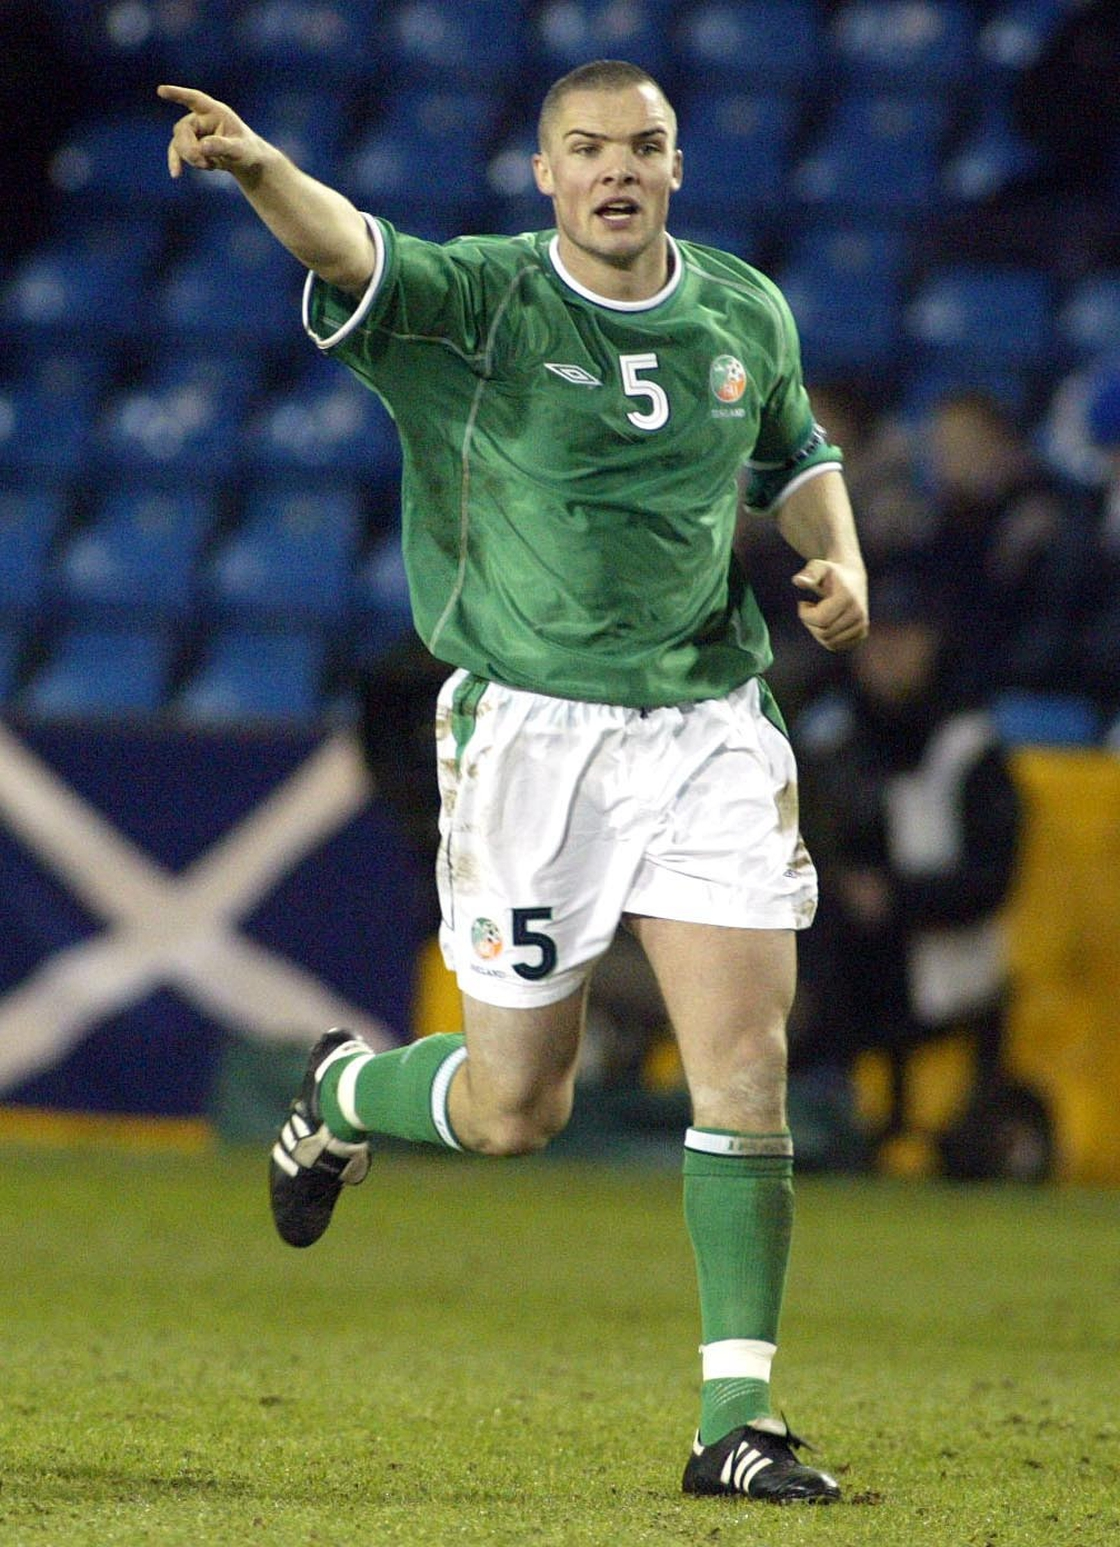 Image - Goodwin with the U21s in 2003